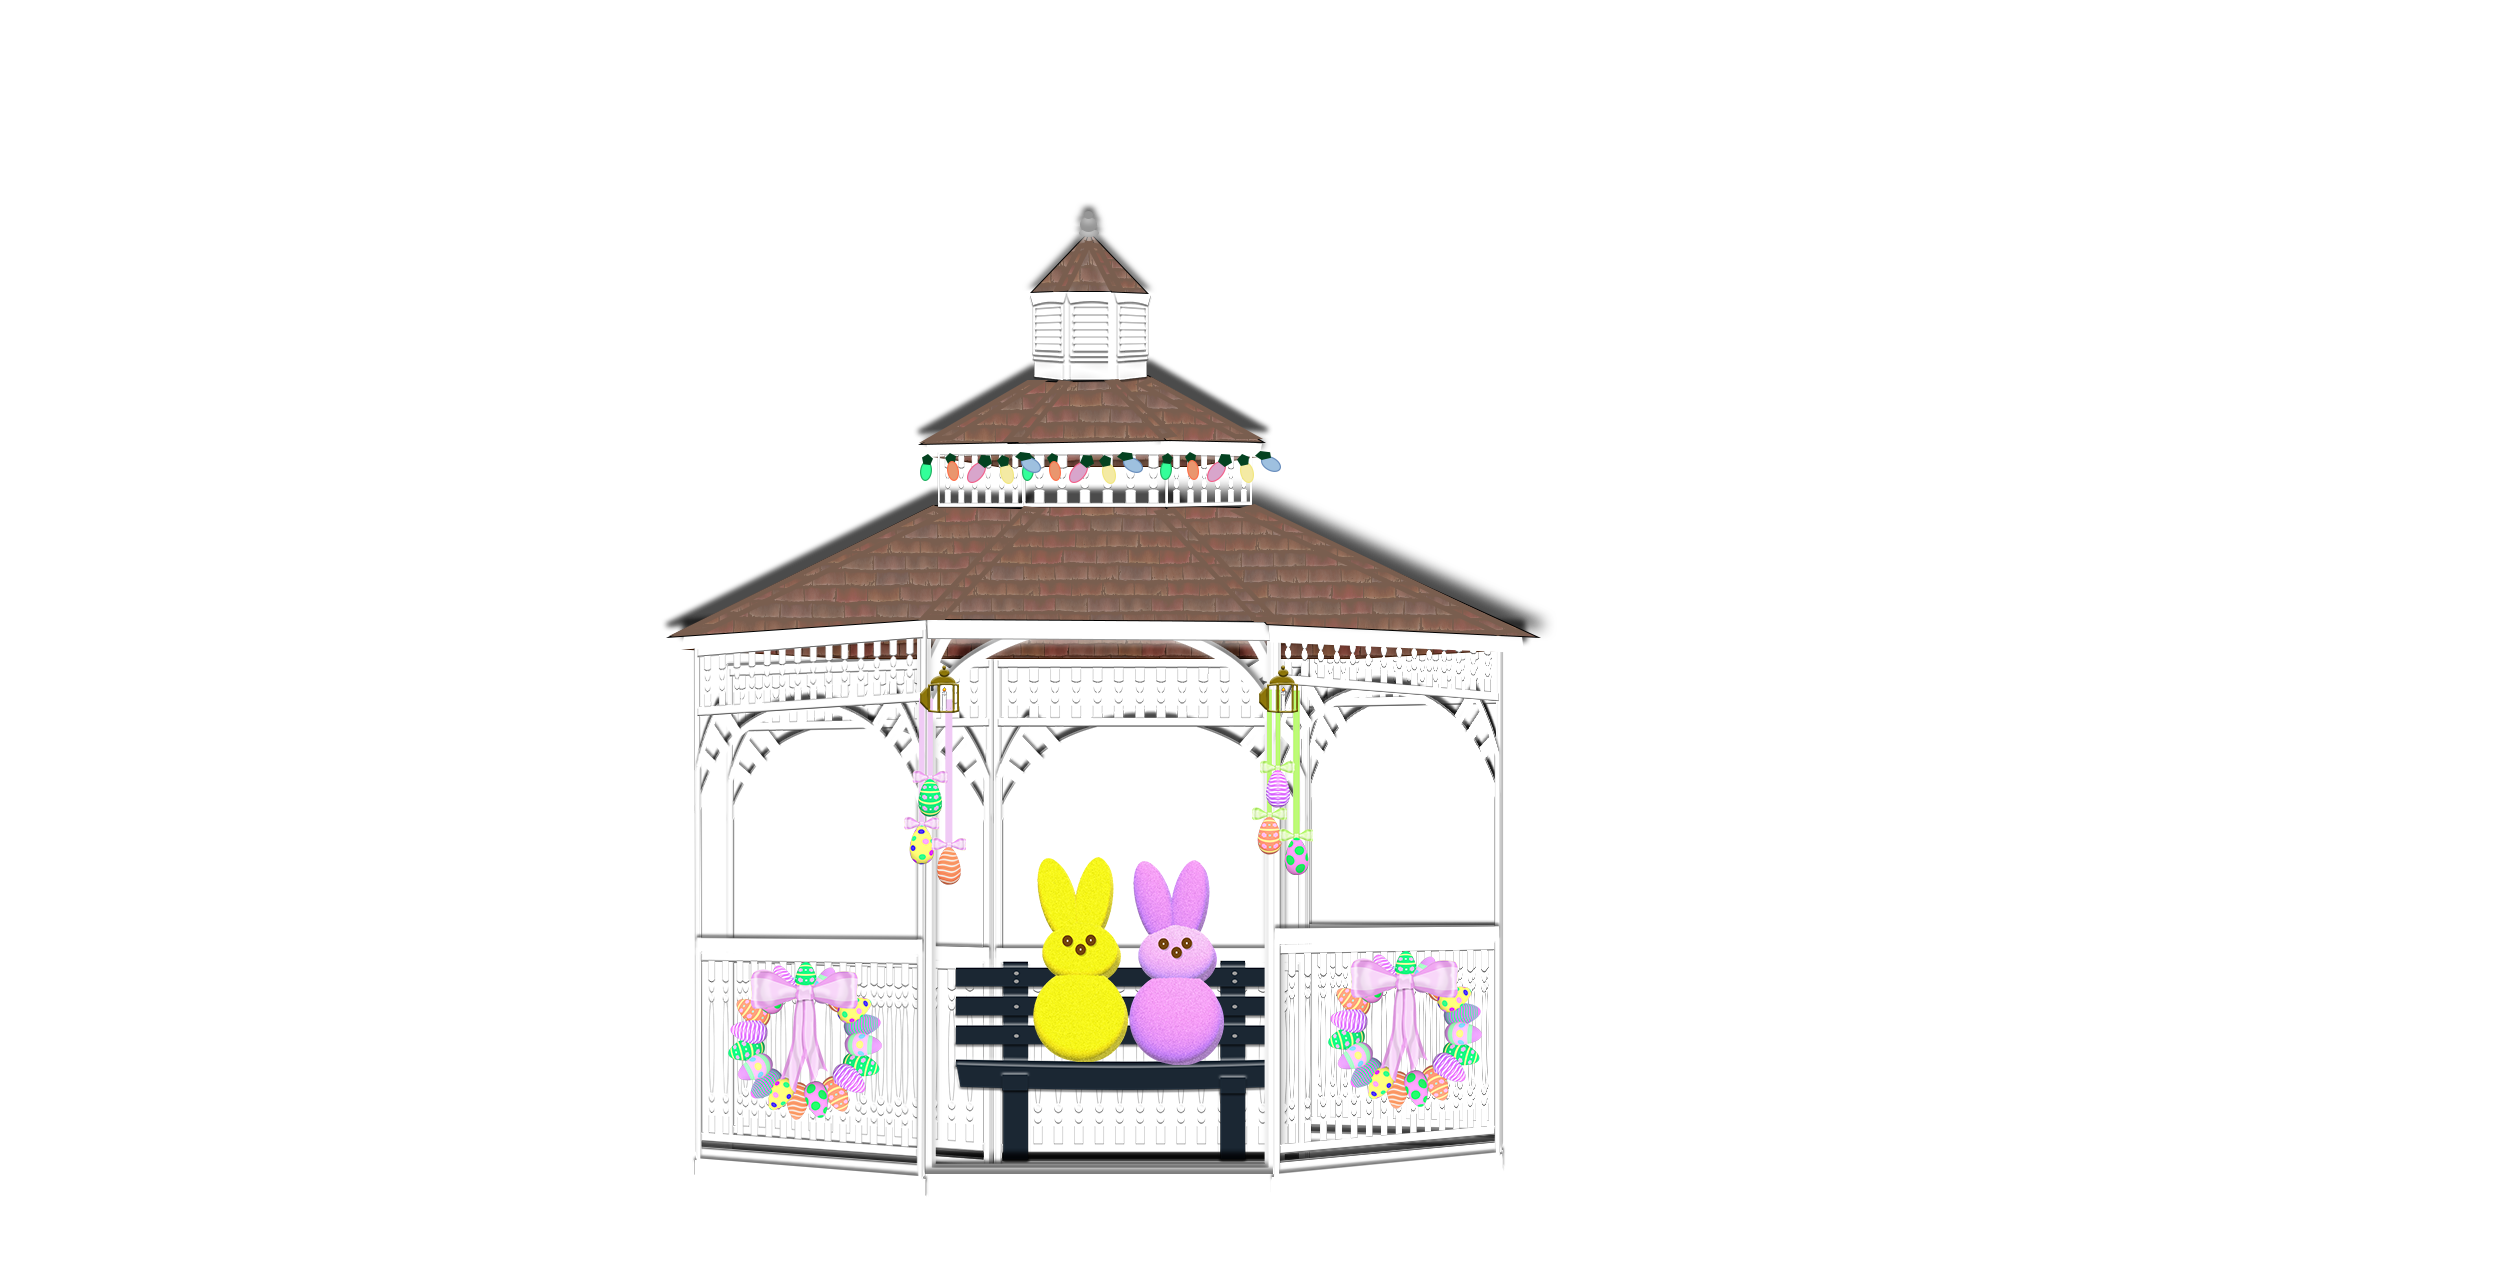 gazebo illustration with yellow and pink peep